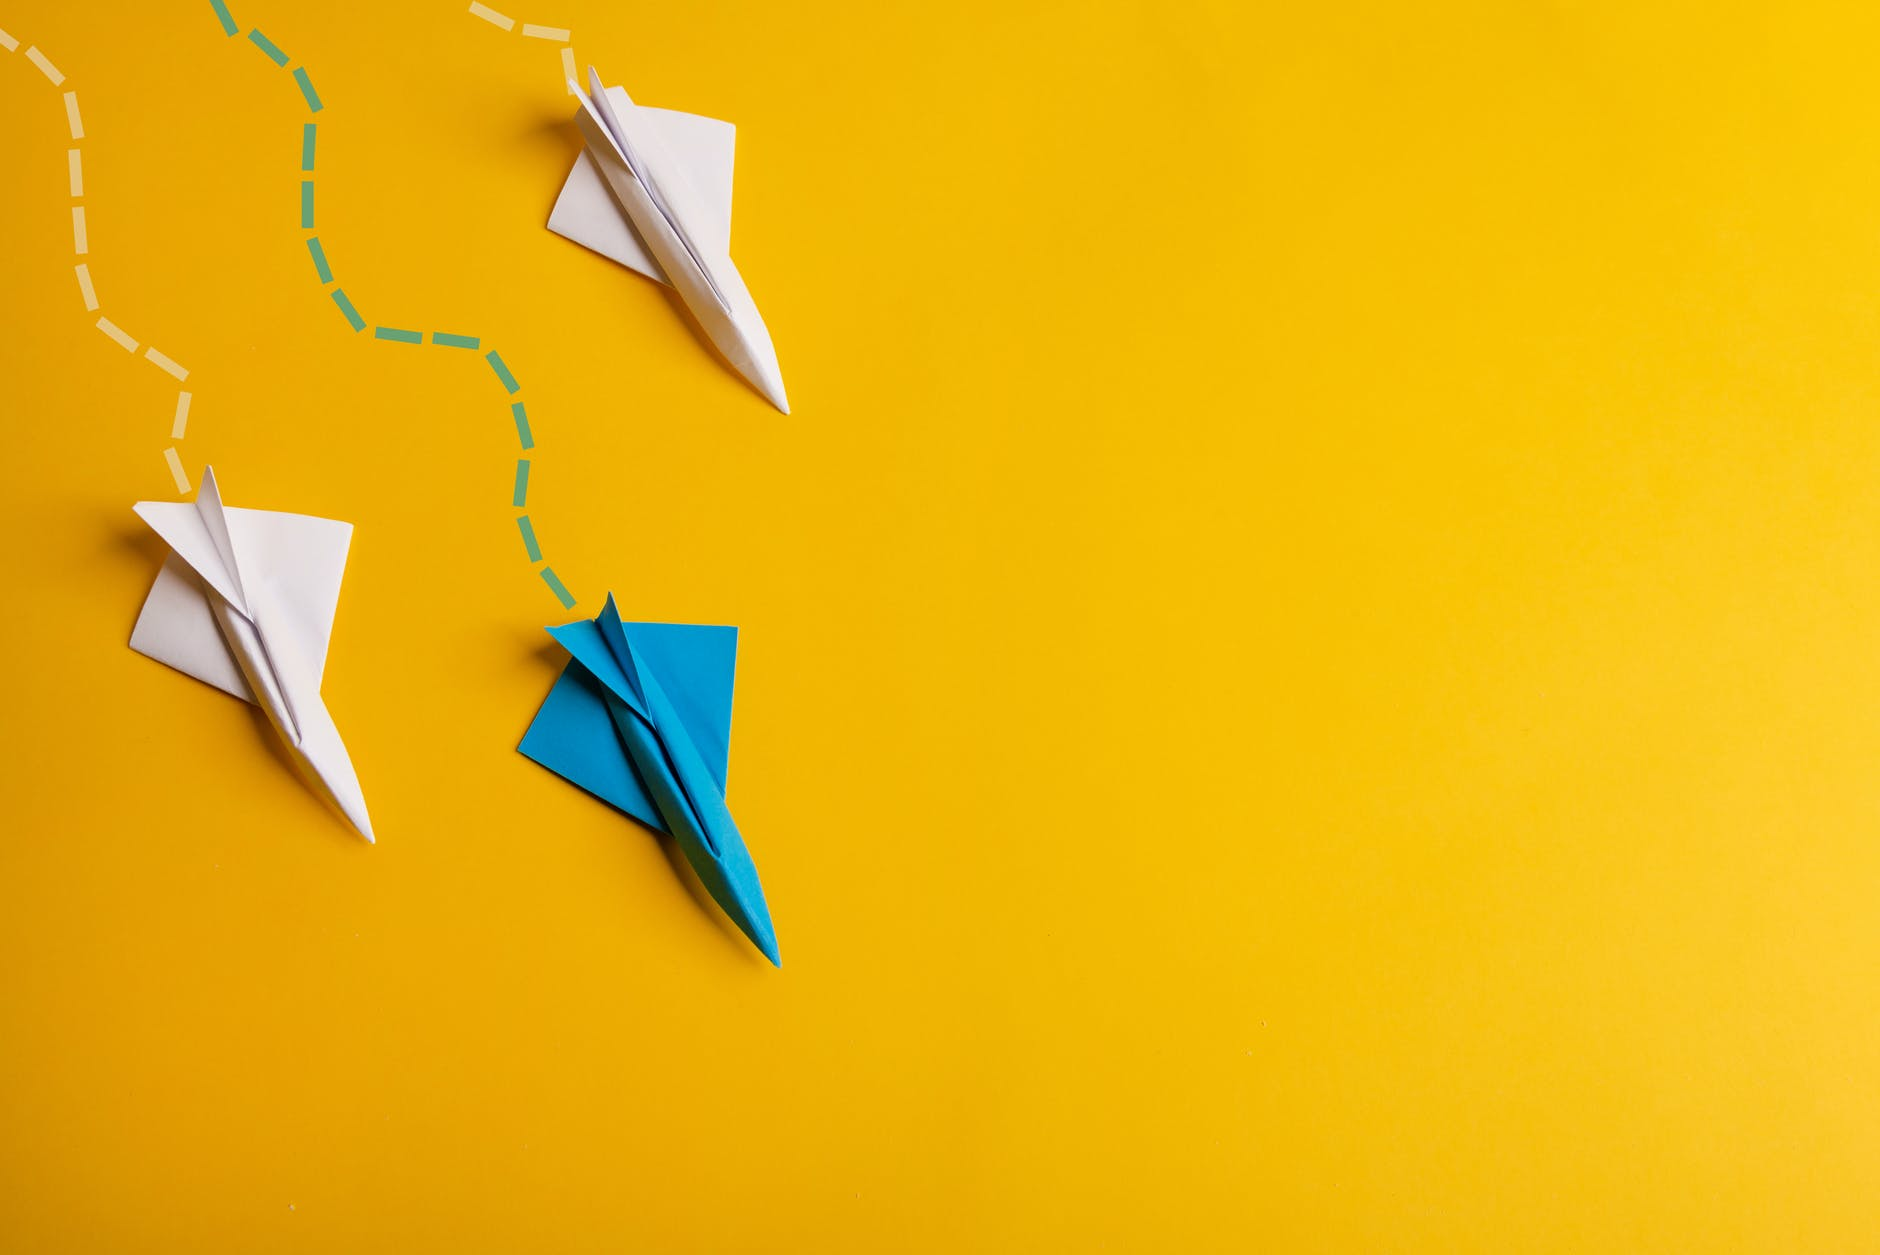 paper planes flying with traces